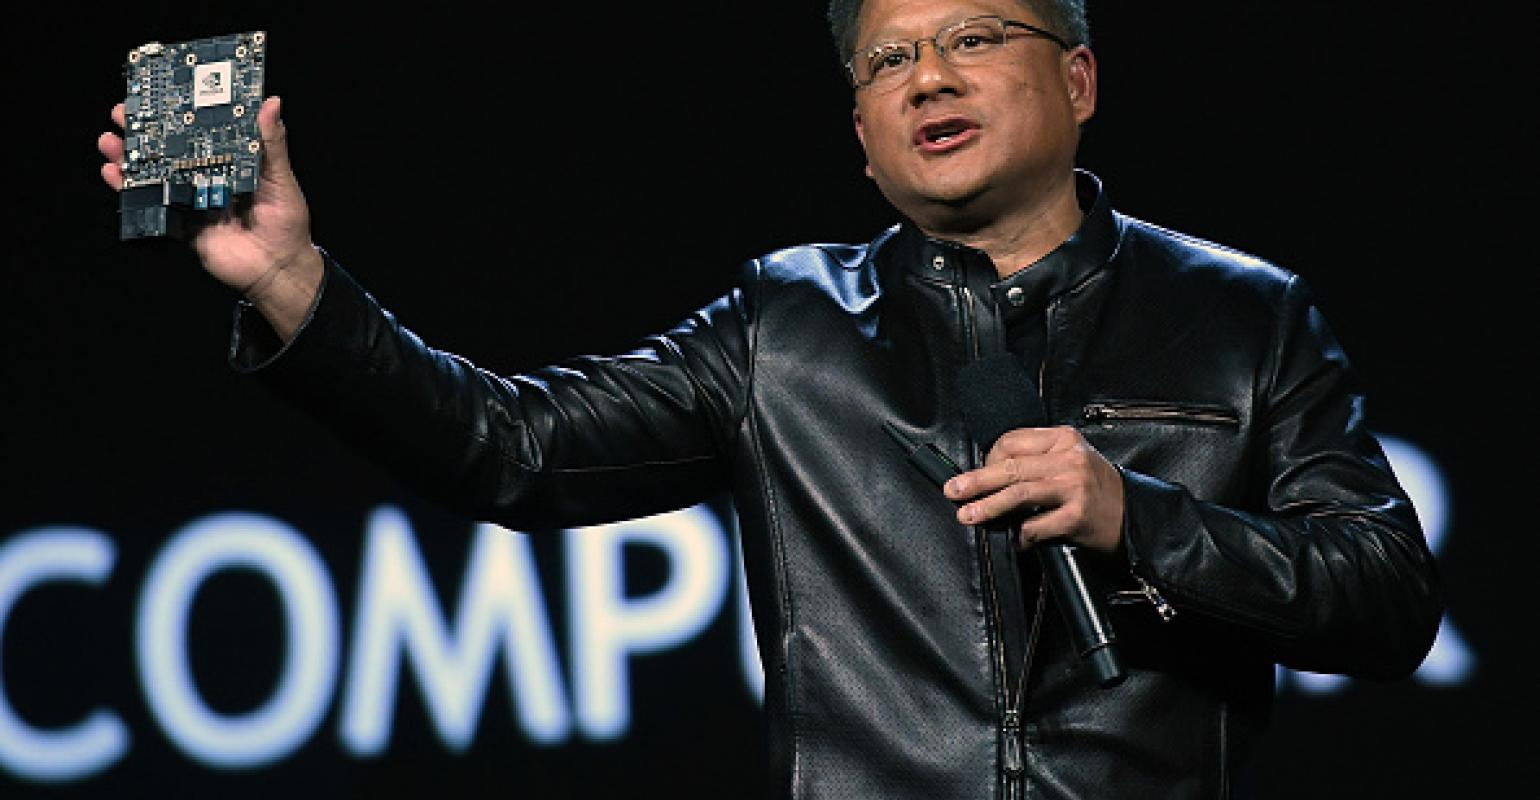 Nvidia CEO 'Confident' $ 40 Billion Arm of Agreement Will Continue